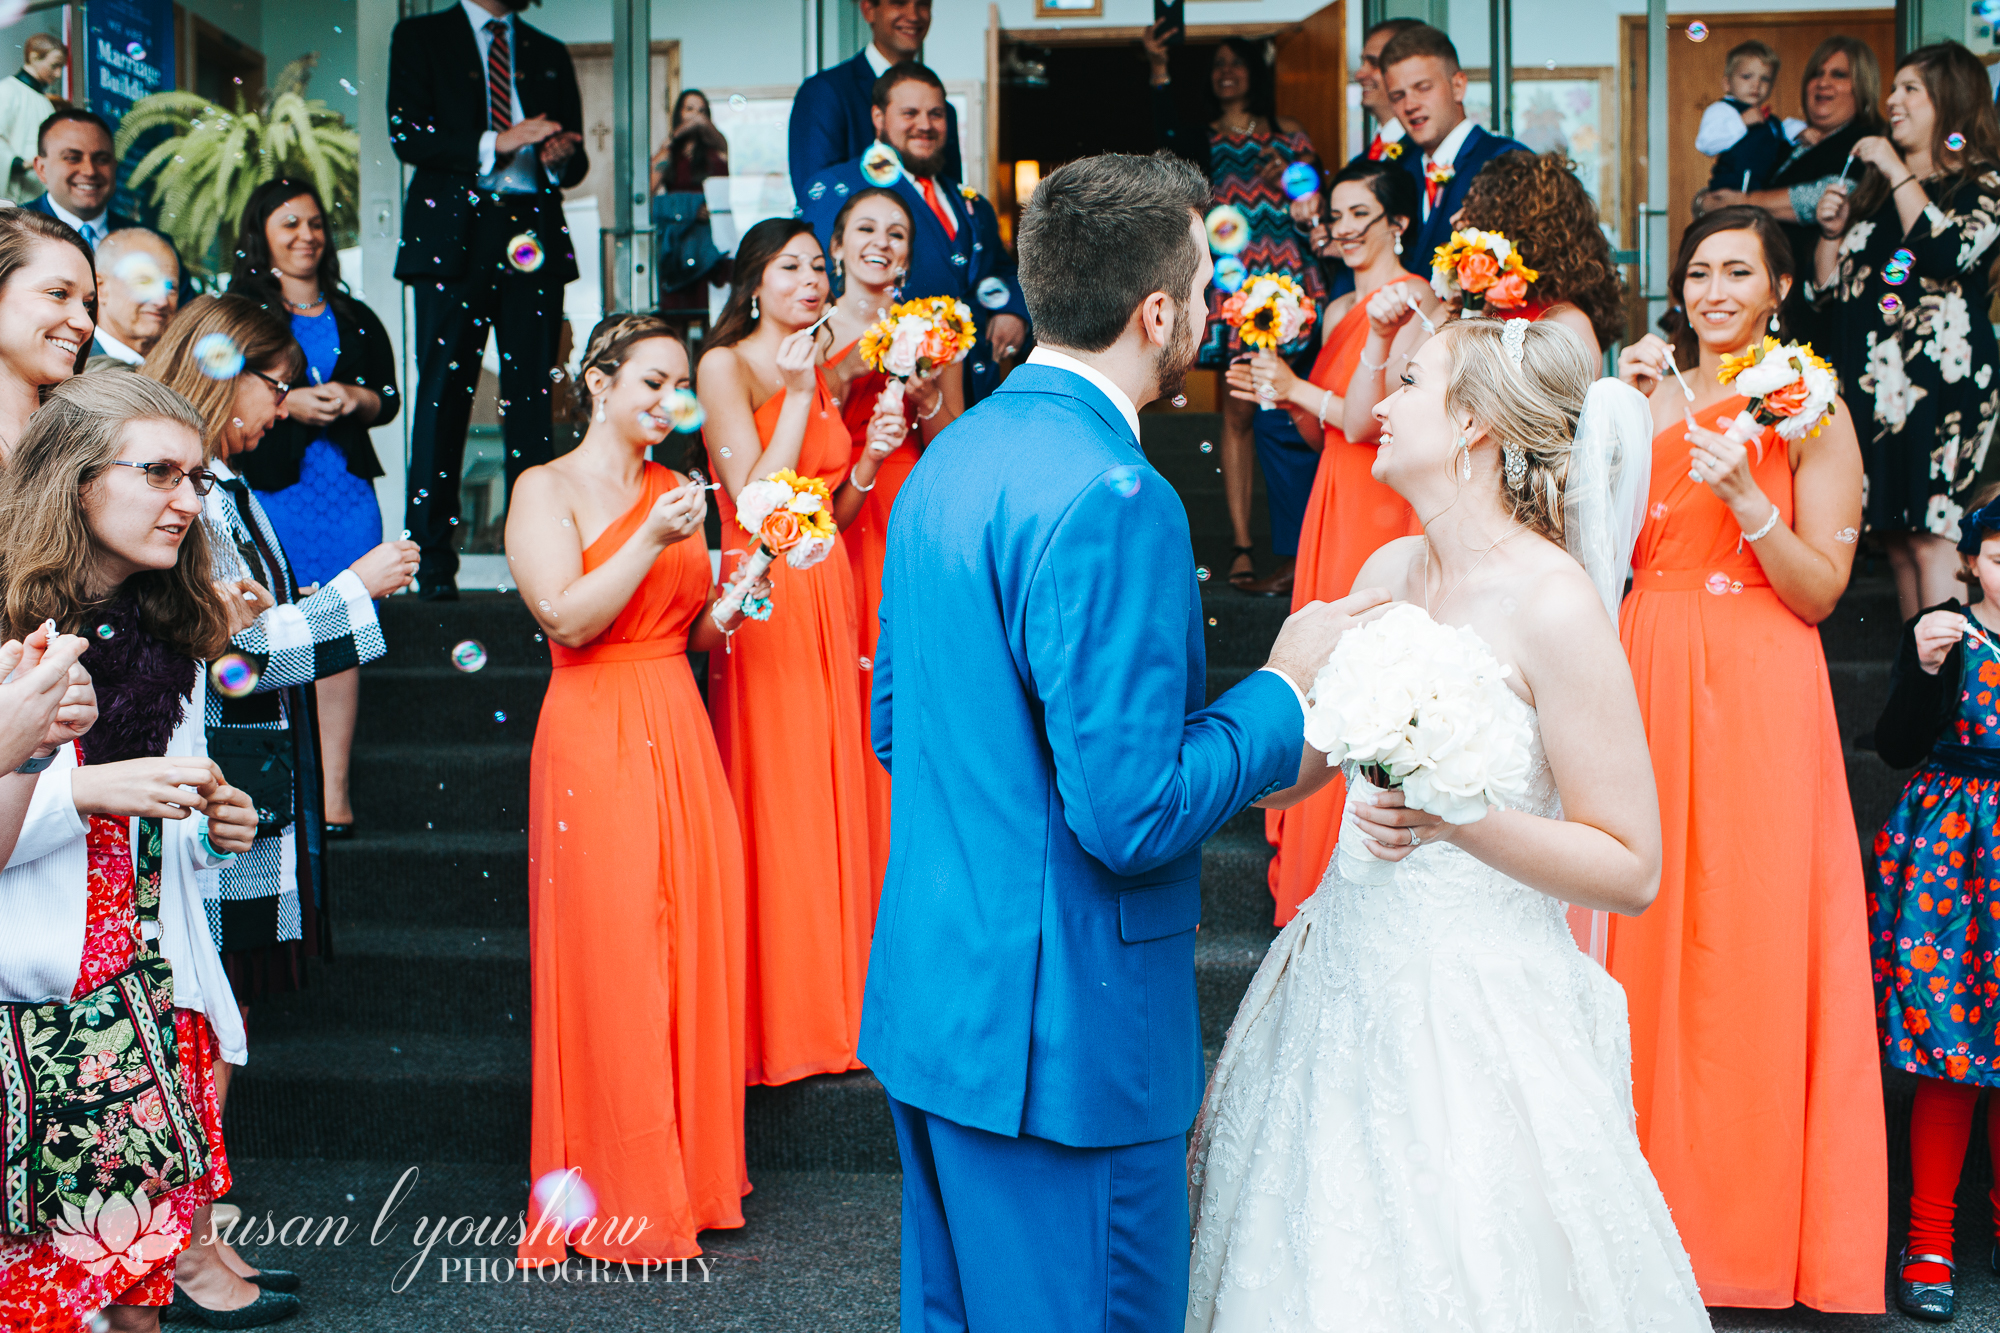 BLOG Kylie and corey Bennet 10-13-2018 SLY Photography LLC-79.jpg